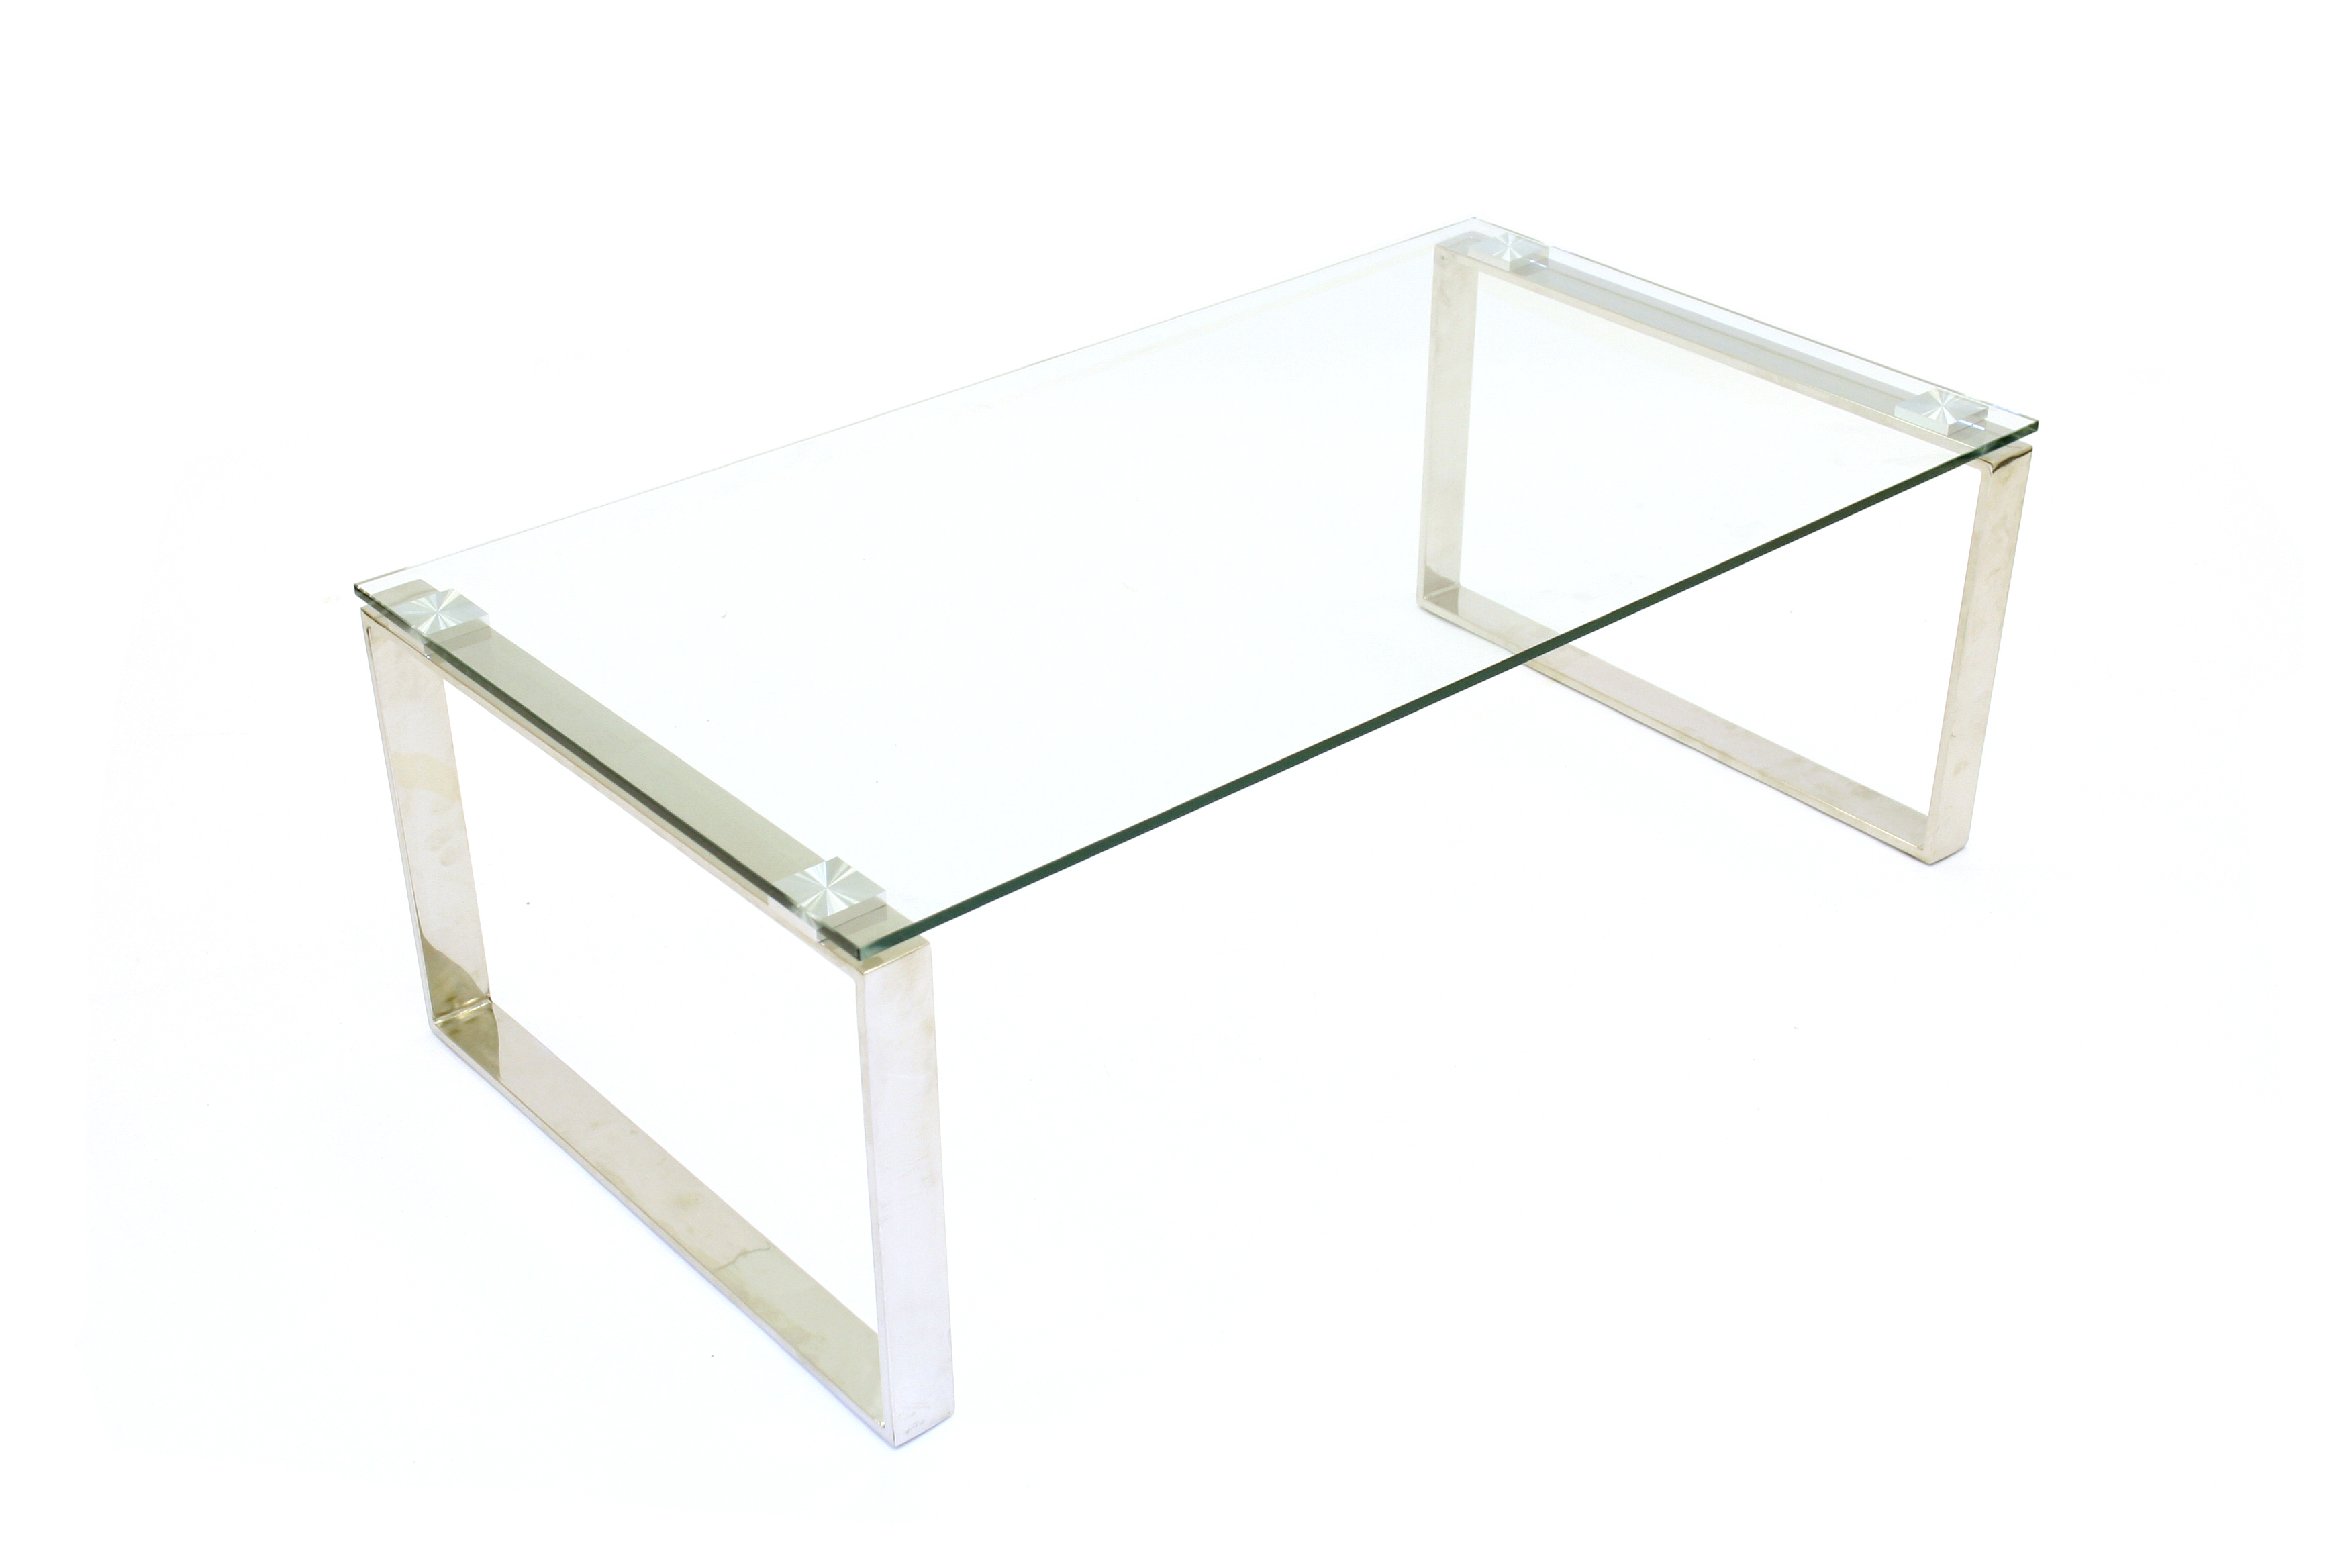 Glass Coffee Tables For Hire Silver Metal Frame Be Event Hire in sizing 3504 X 2336